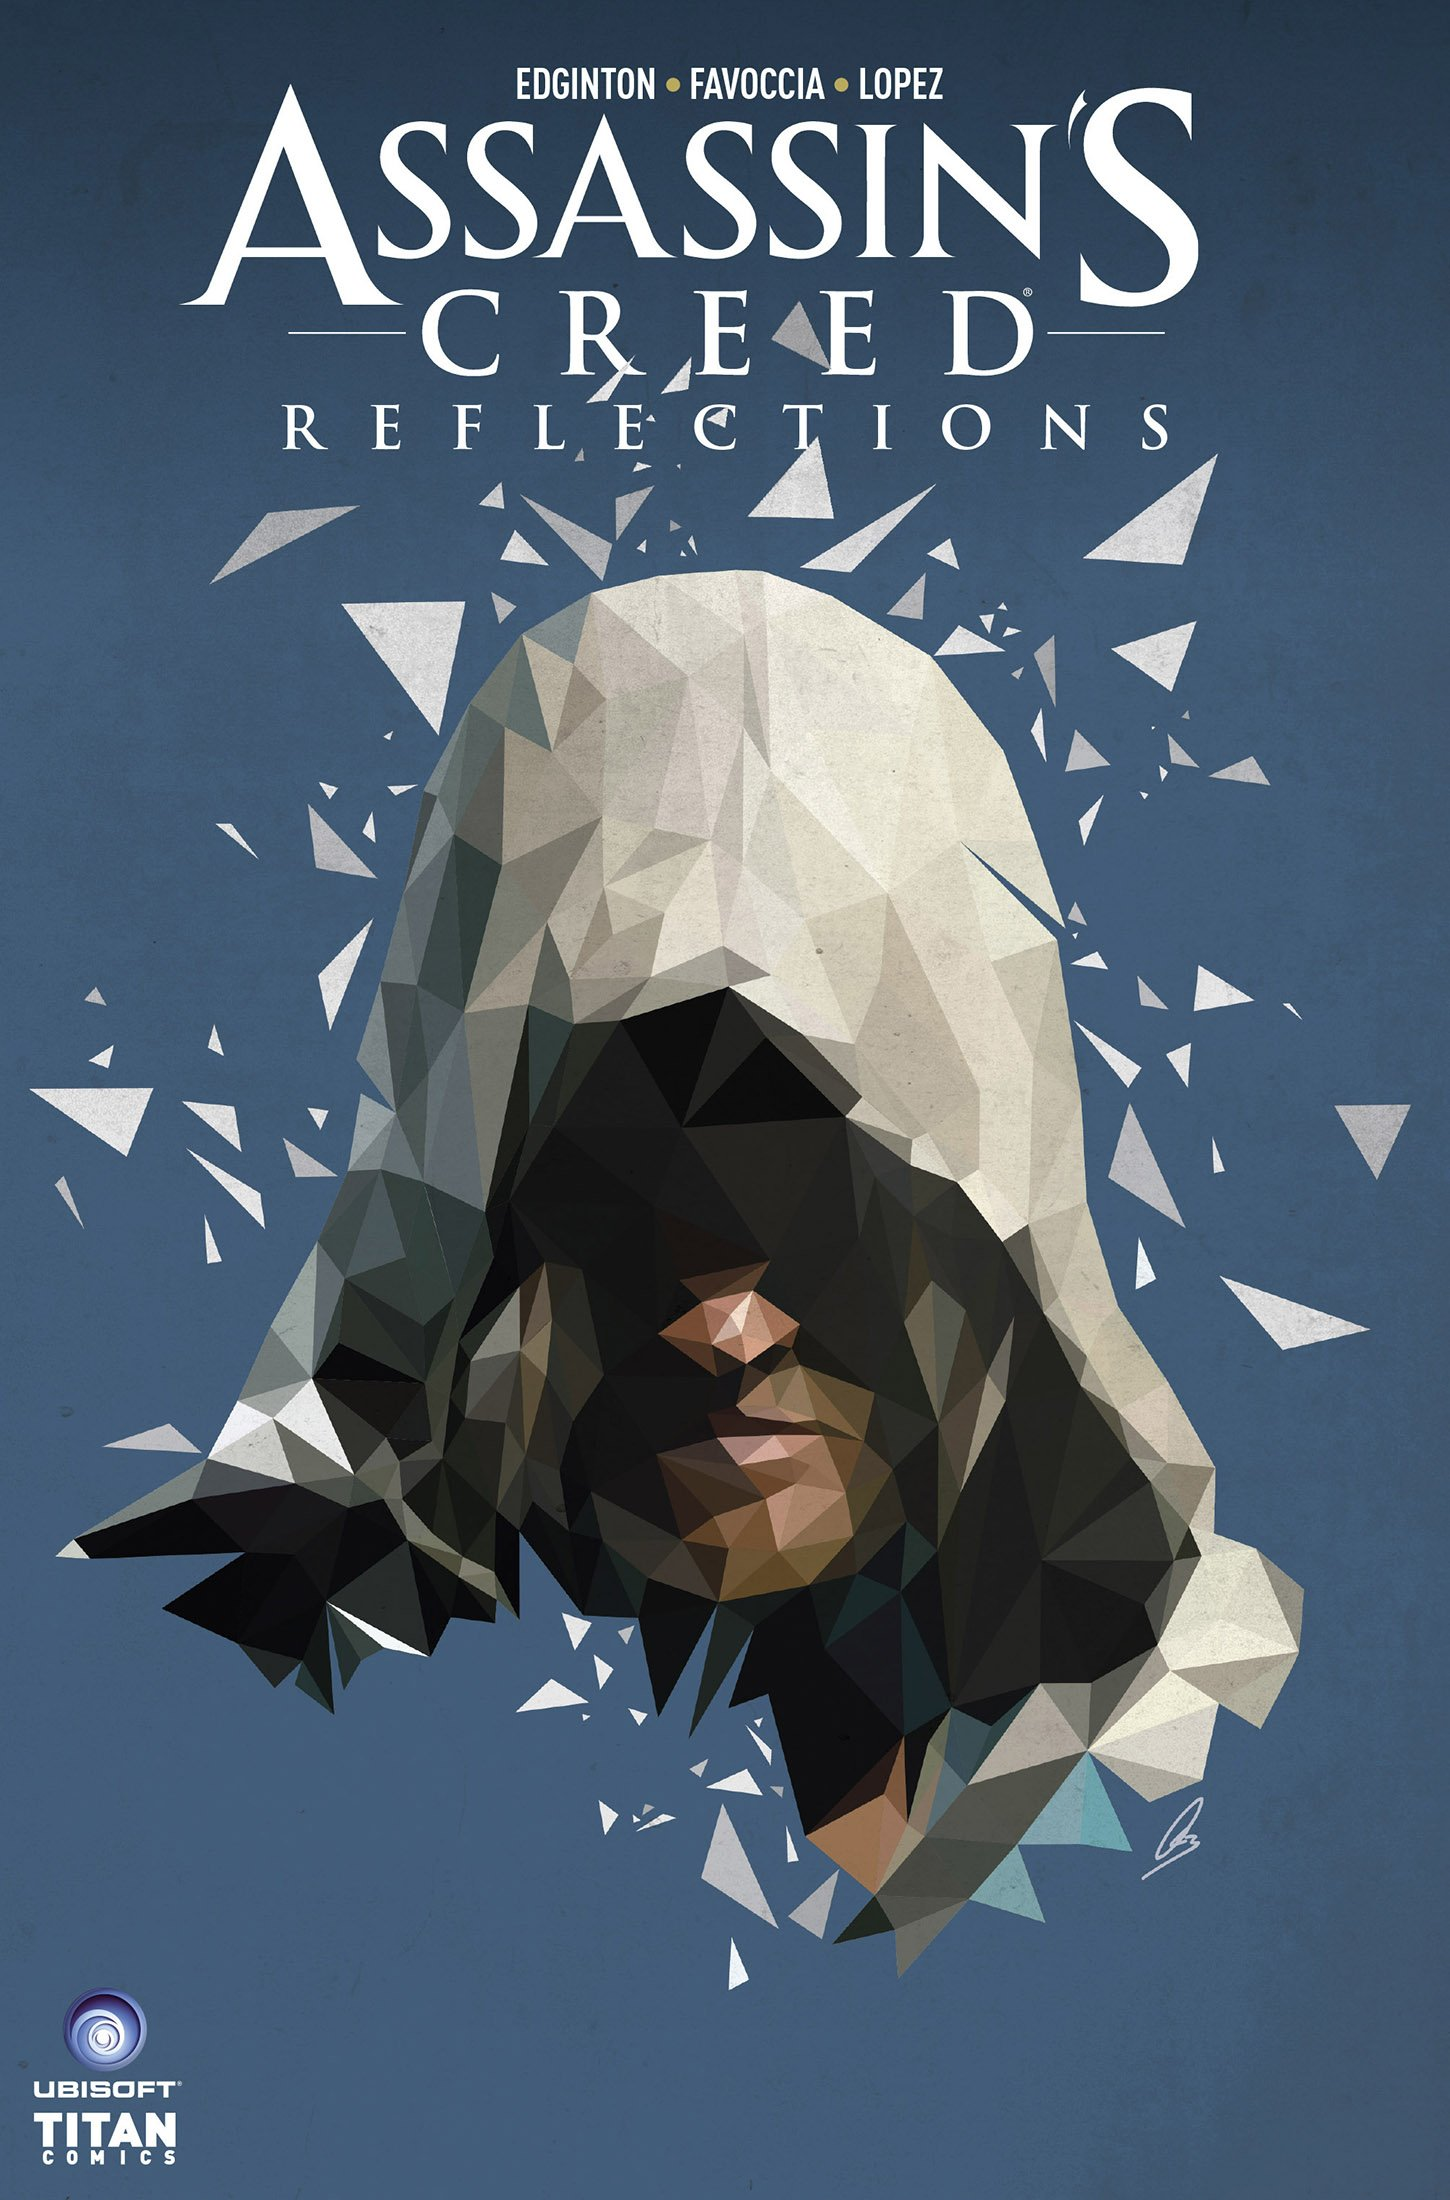 Assassin's Creed - Reflections 03 (June 2017) (cover c)